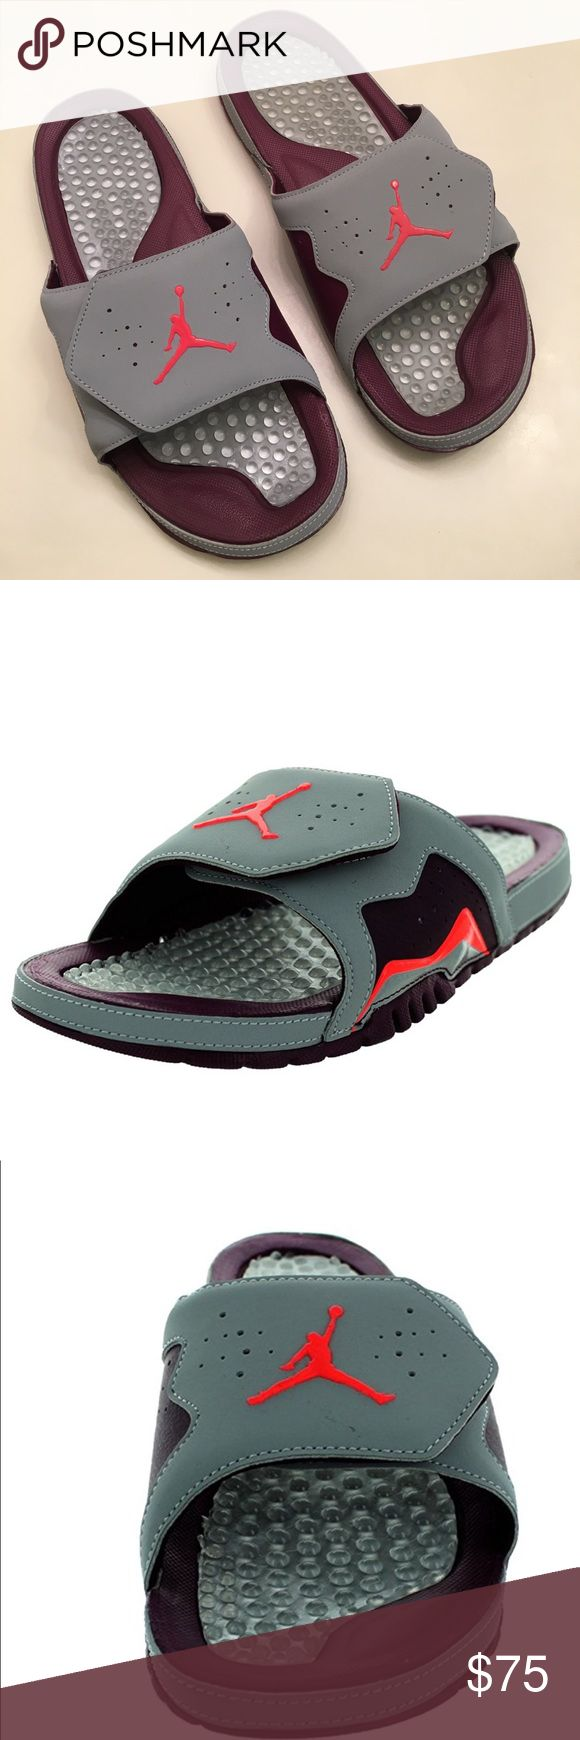 Jordan Hydro Vll Retro Sandal Slippers Inspired by the Air Jordan VII, the Jordan Hydro VII Retro is the perfect recovery slide..synthetic Rubber sole Adjustable fit Massaging footbed Hook-and-loop fastener for a personalized fit Jordan Shoes Sandals & Flip-Flops